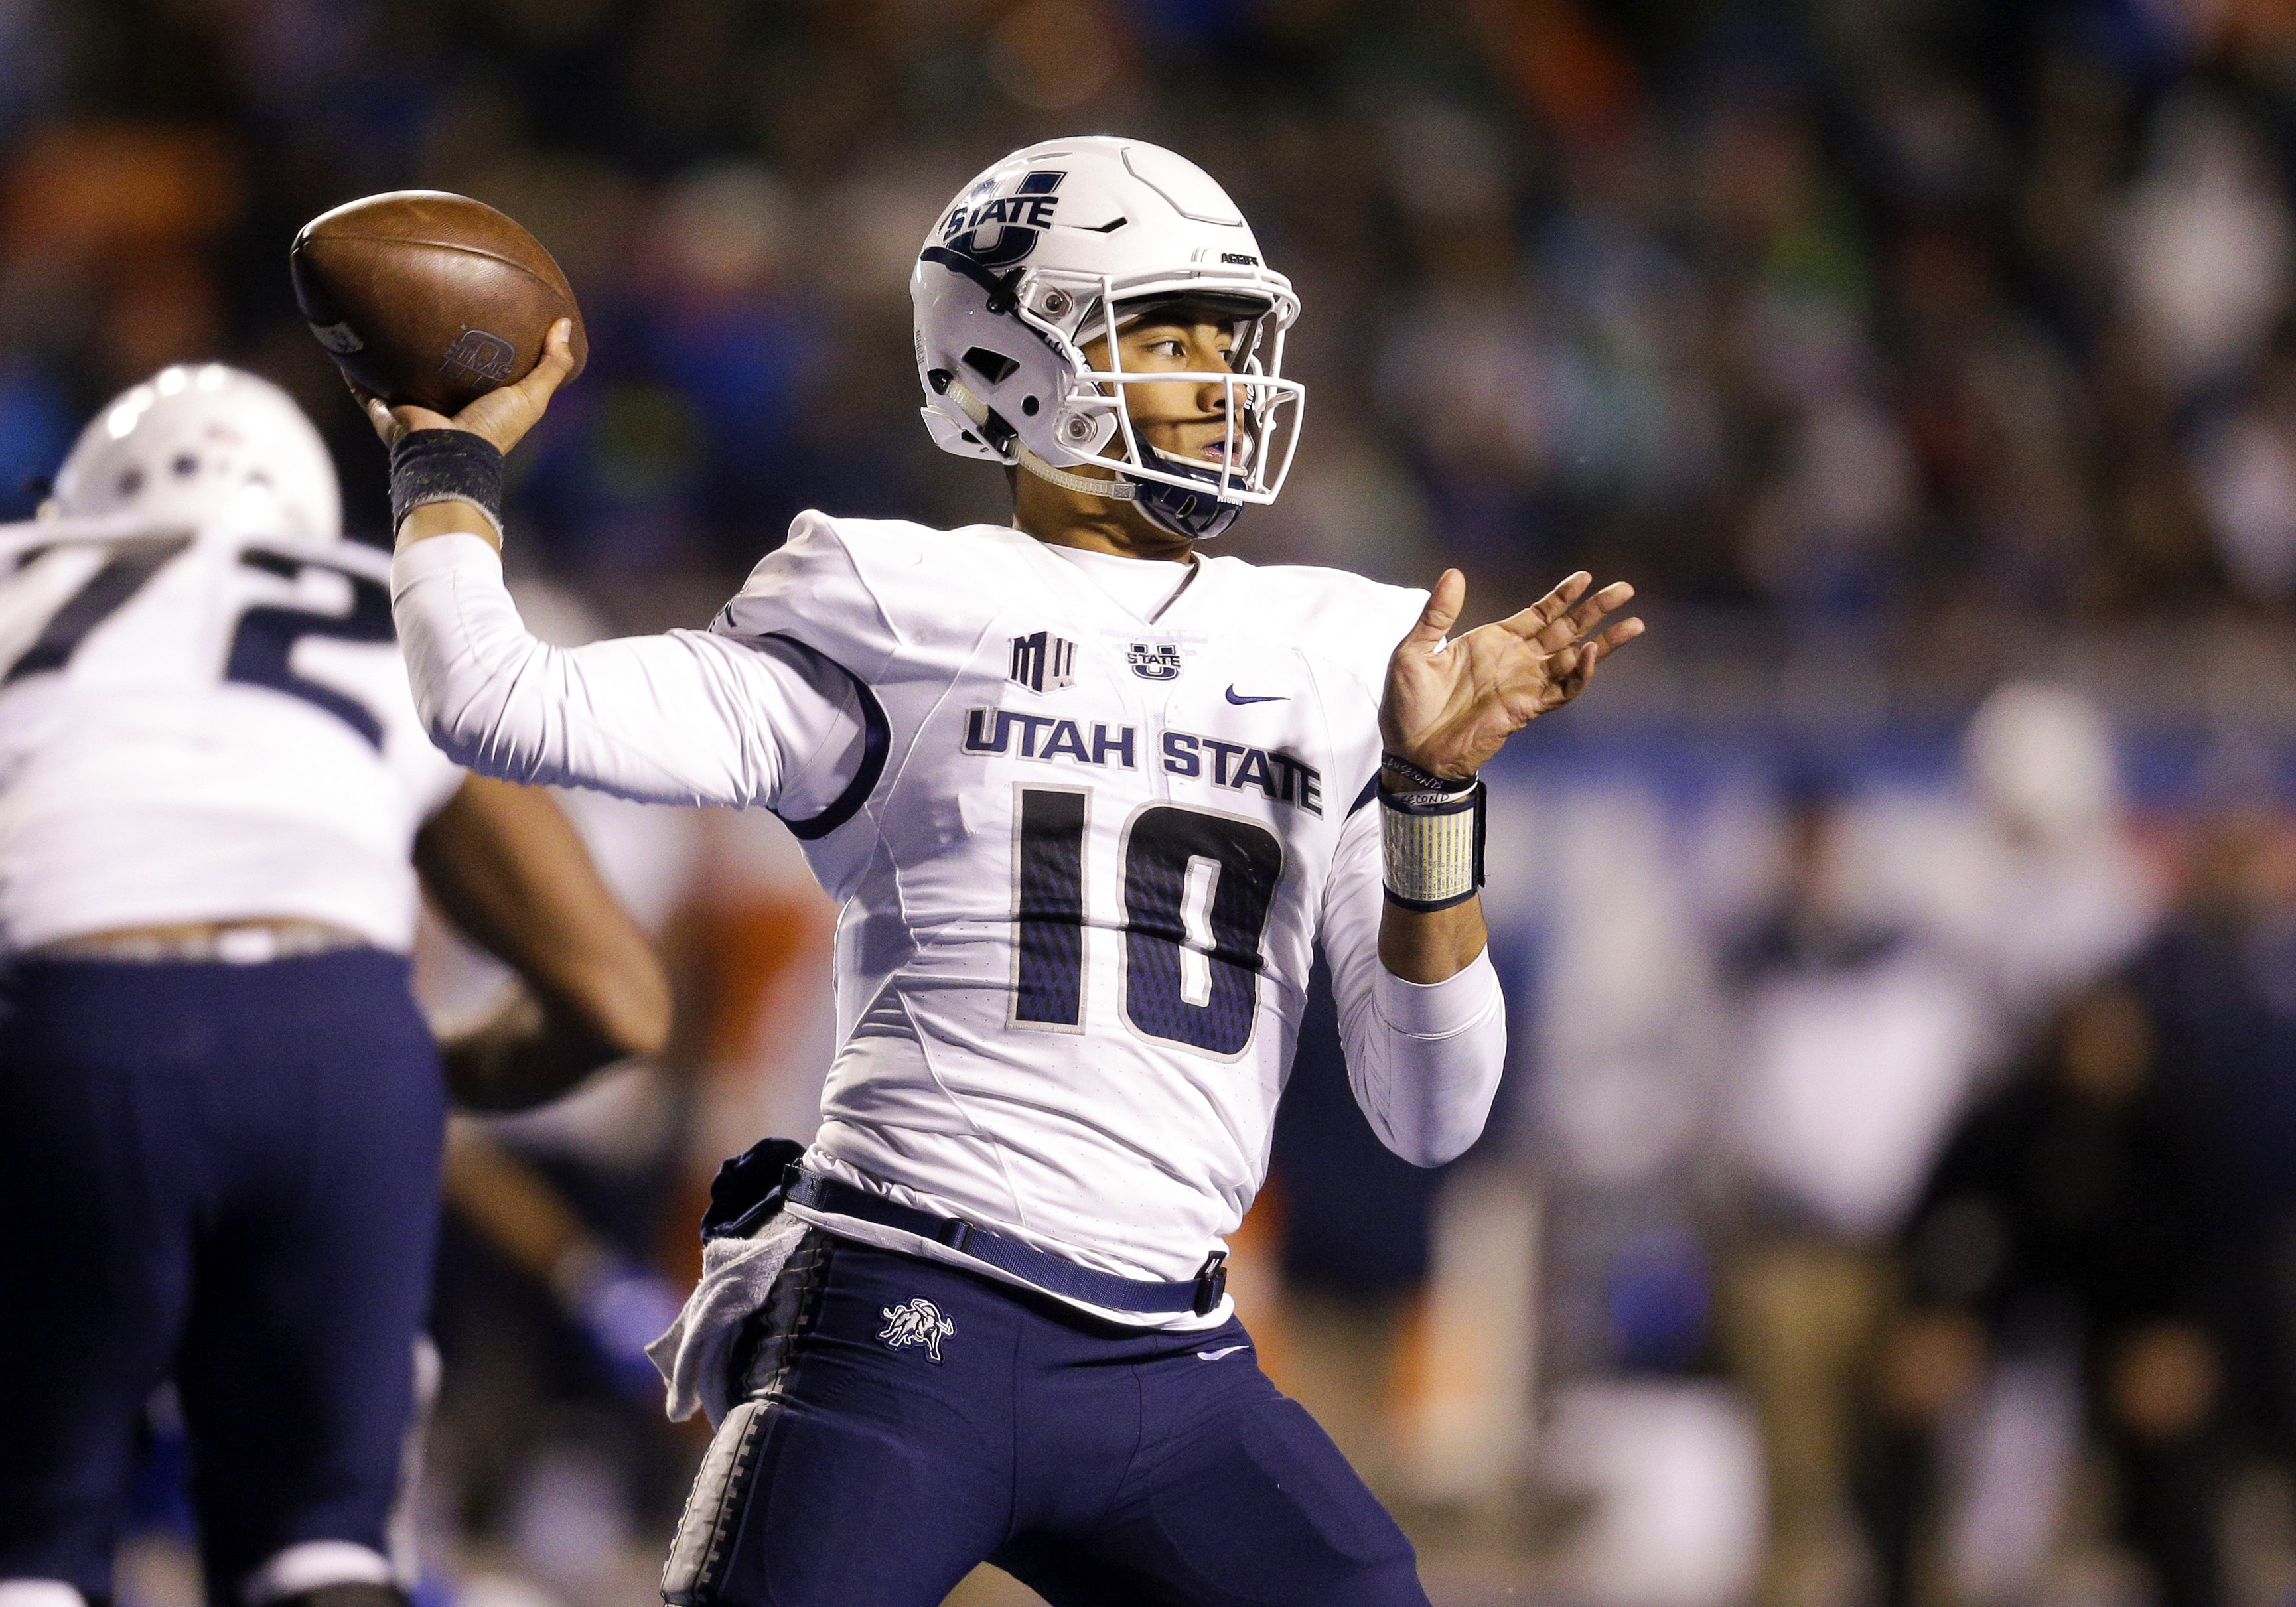 FILE - In this Saturday, Nov. 24, 2018 file photo, Utah State quarterback Jordan Love (10) looks to throw the ball against Boise State in the second of an NCAA college football game, Saturday, Nov. 24, 2018, in Boise, Idaho. The high-flying offenses of Ut